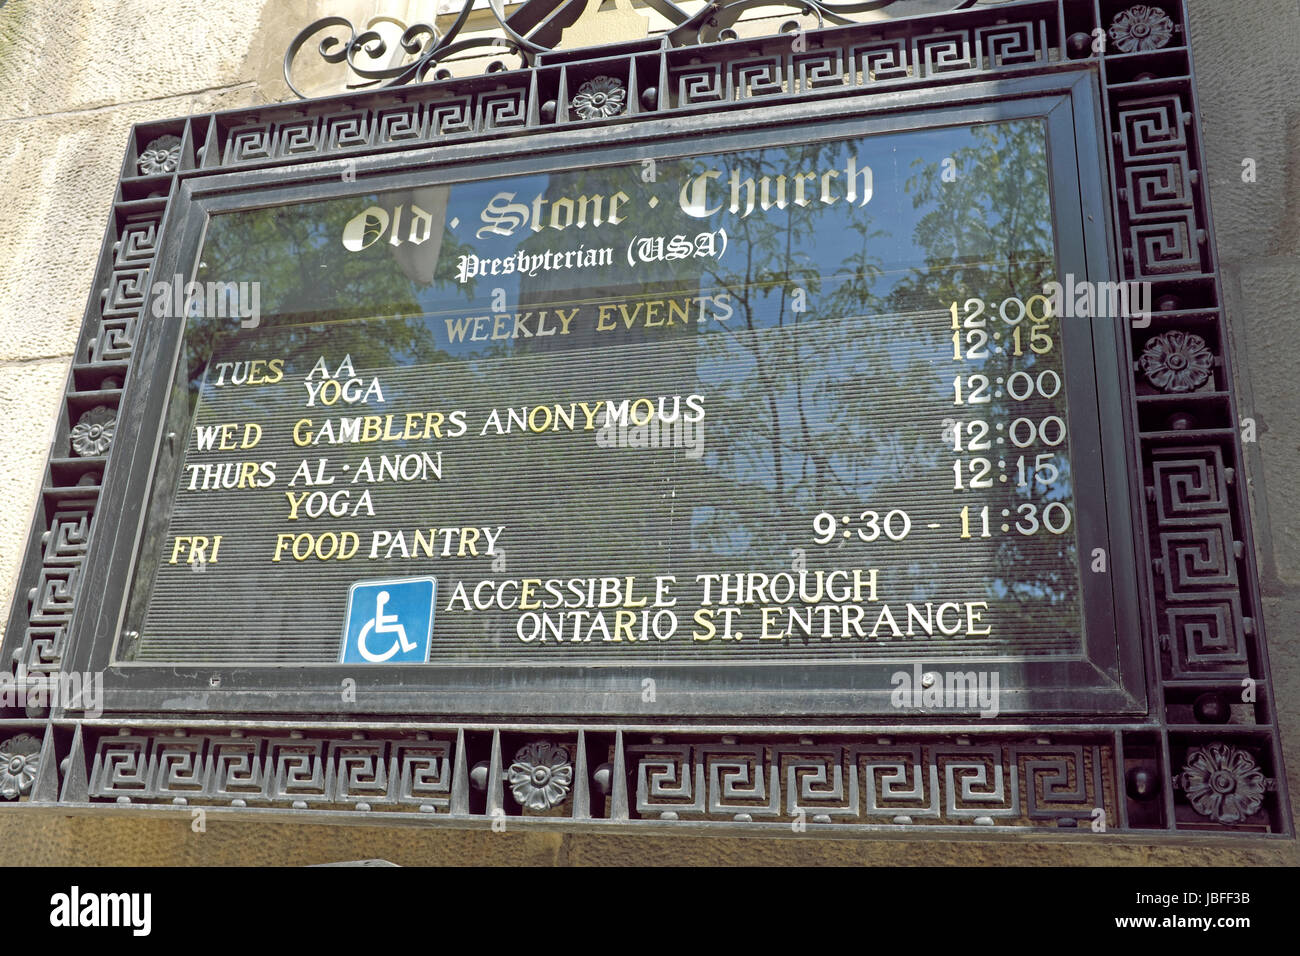 Sign outside Old Stone Church in Cleveland, Ohio shows non-secular weekly events geared towards the great Cleveland - Stock Image